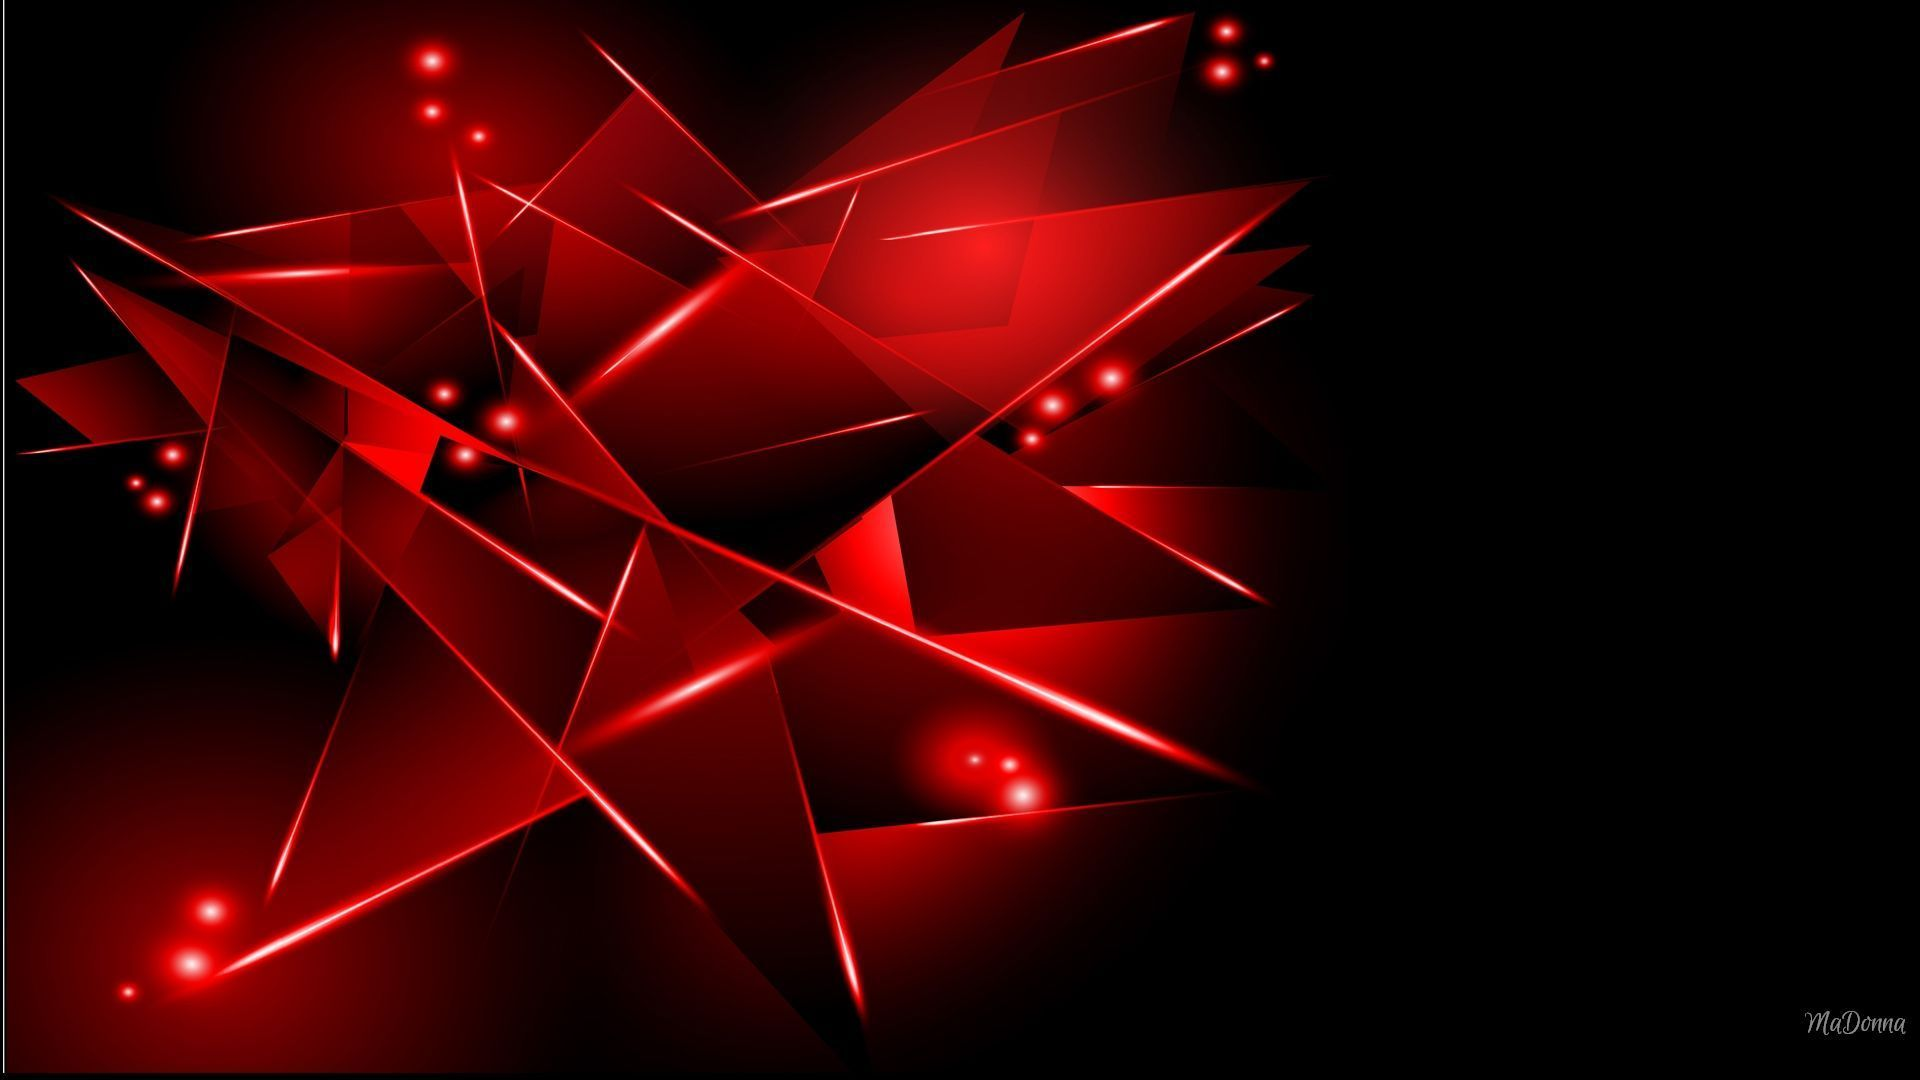 Black And Red Free Wallpapers 2315 Hd Wallpapers Site Black And Red Wallpaper Geometric Shapes